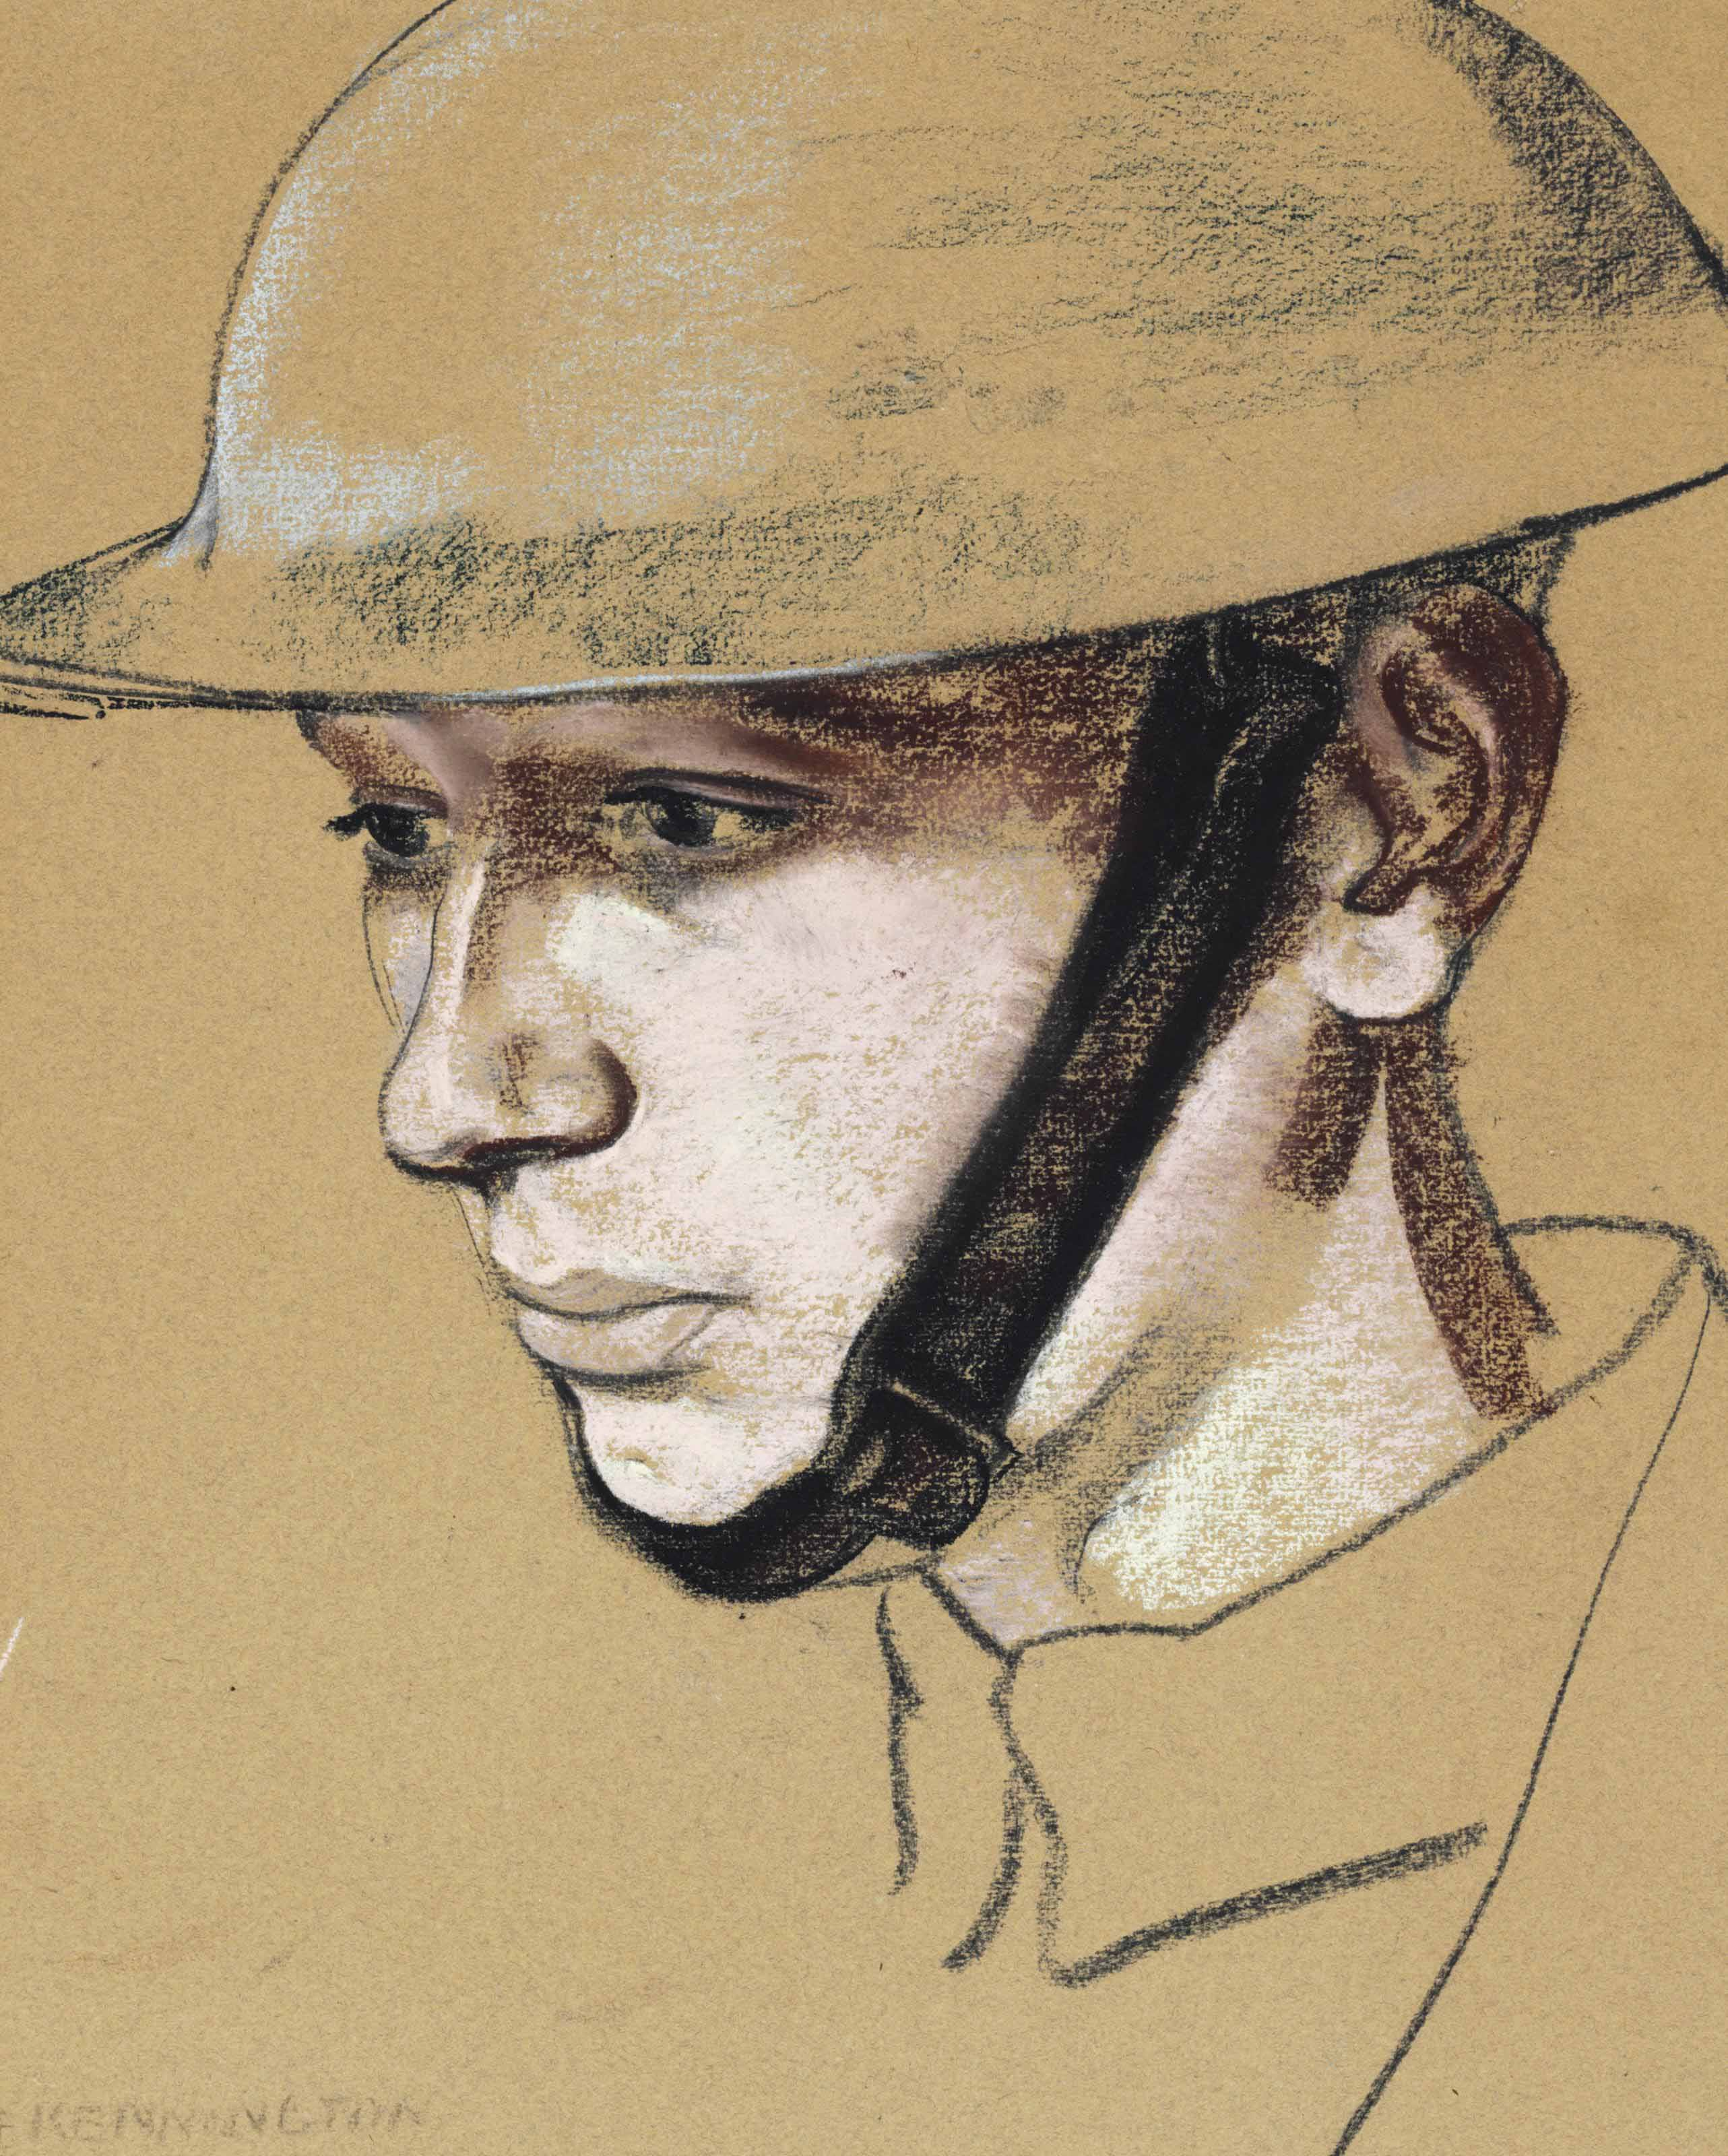 "KENNINGTON, Eric, R.A. (1888-1960). Portrait of a Soldier. Charcoal and pastel on paper, signed at lower left ""E. KENNINGTON."" 15 x 12 inches. Framed. Provenance: Siegfried Sassoon (1886-1967); and by descent; sold Christie's King Street 6 June 2007, lot 105."